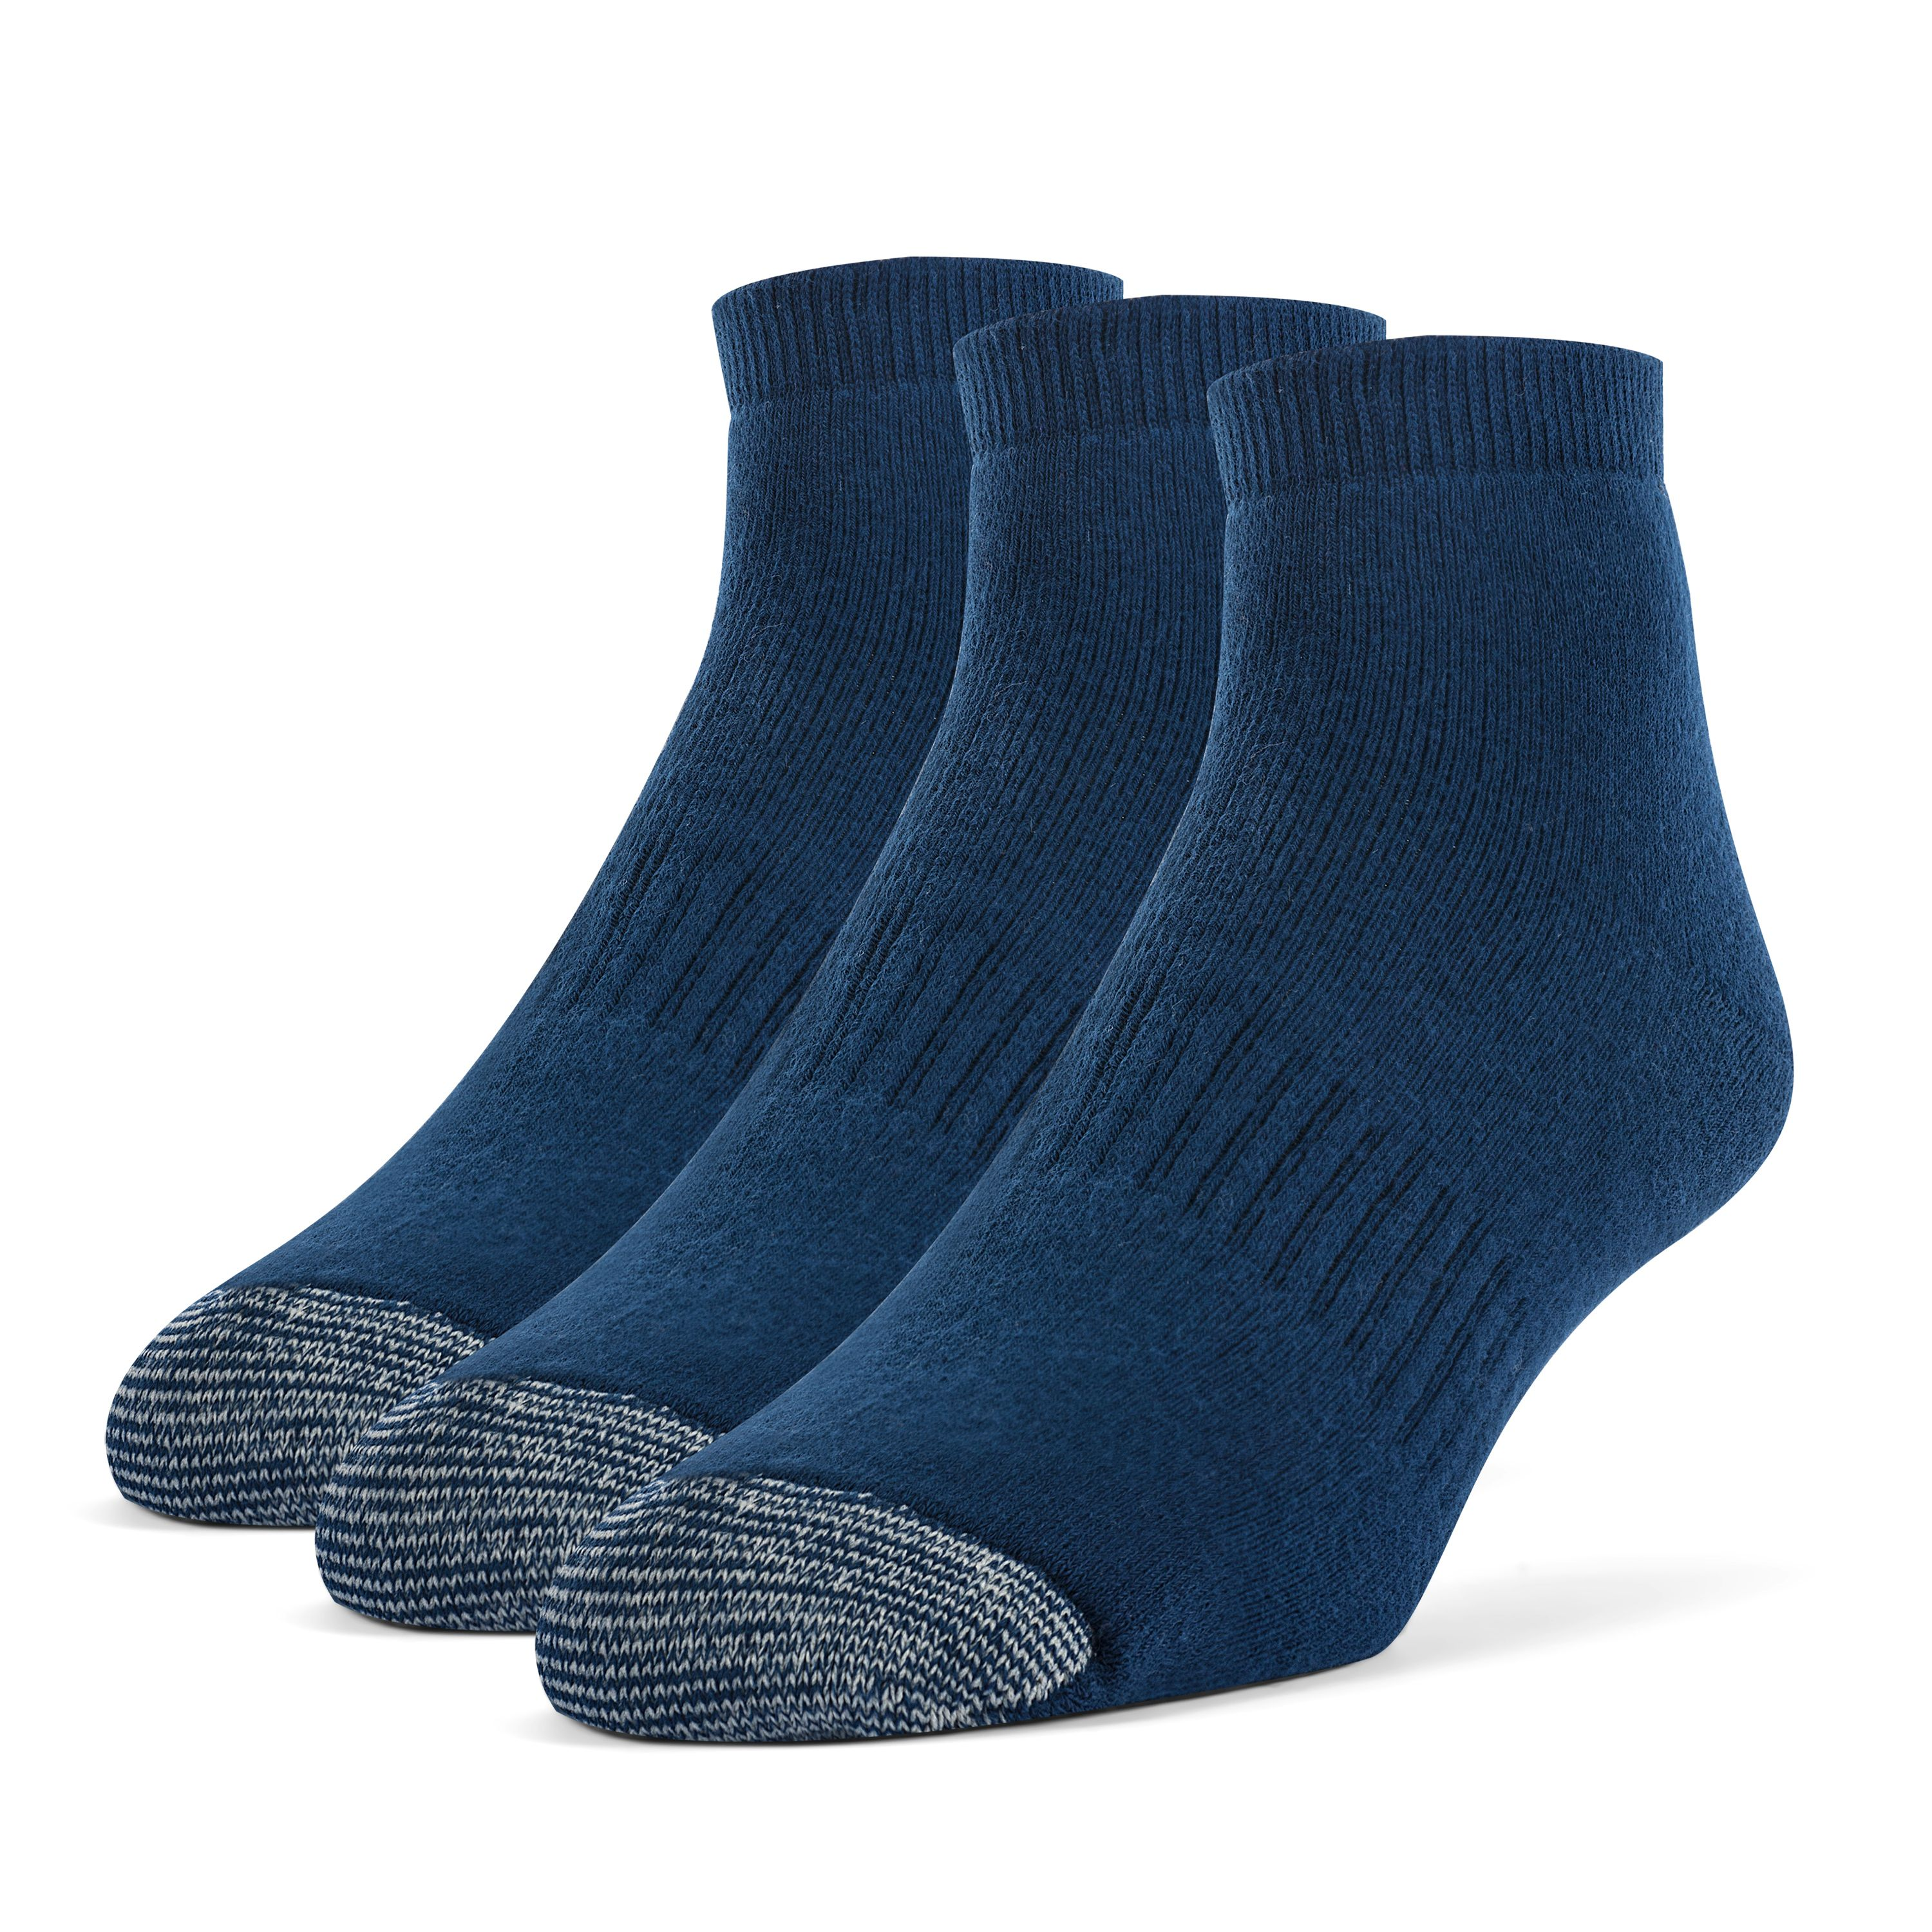 Men's Cotton ExtraSoft Ankle Cushion Socks - 3 Pairs